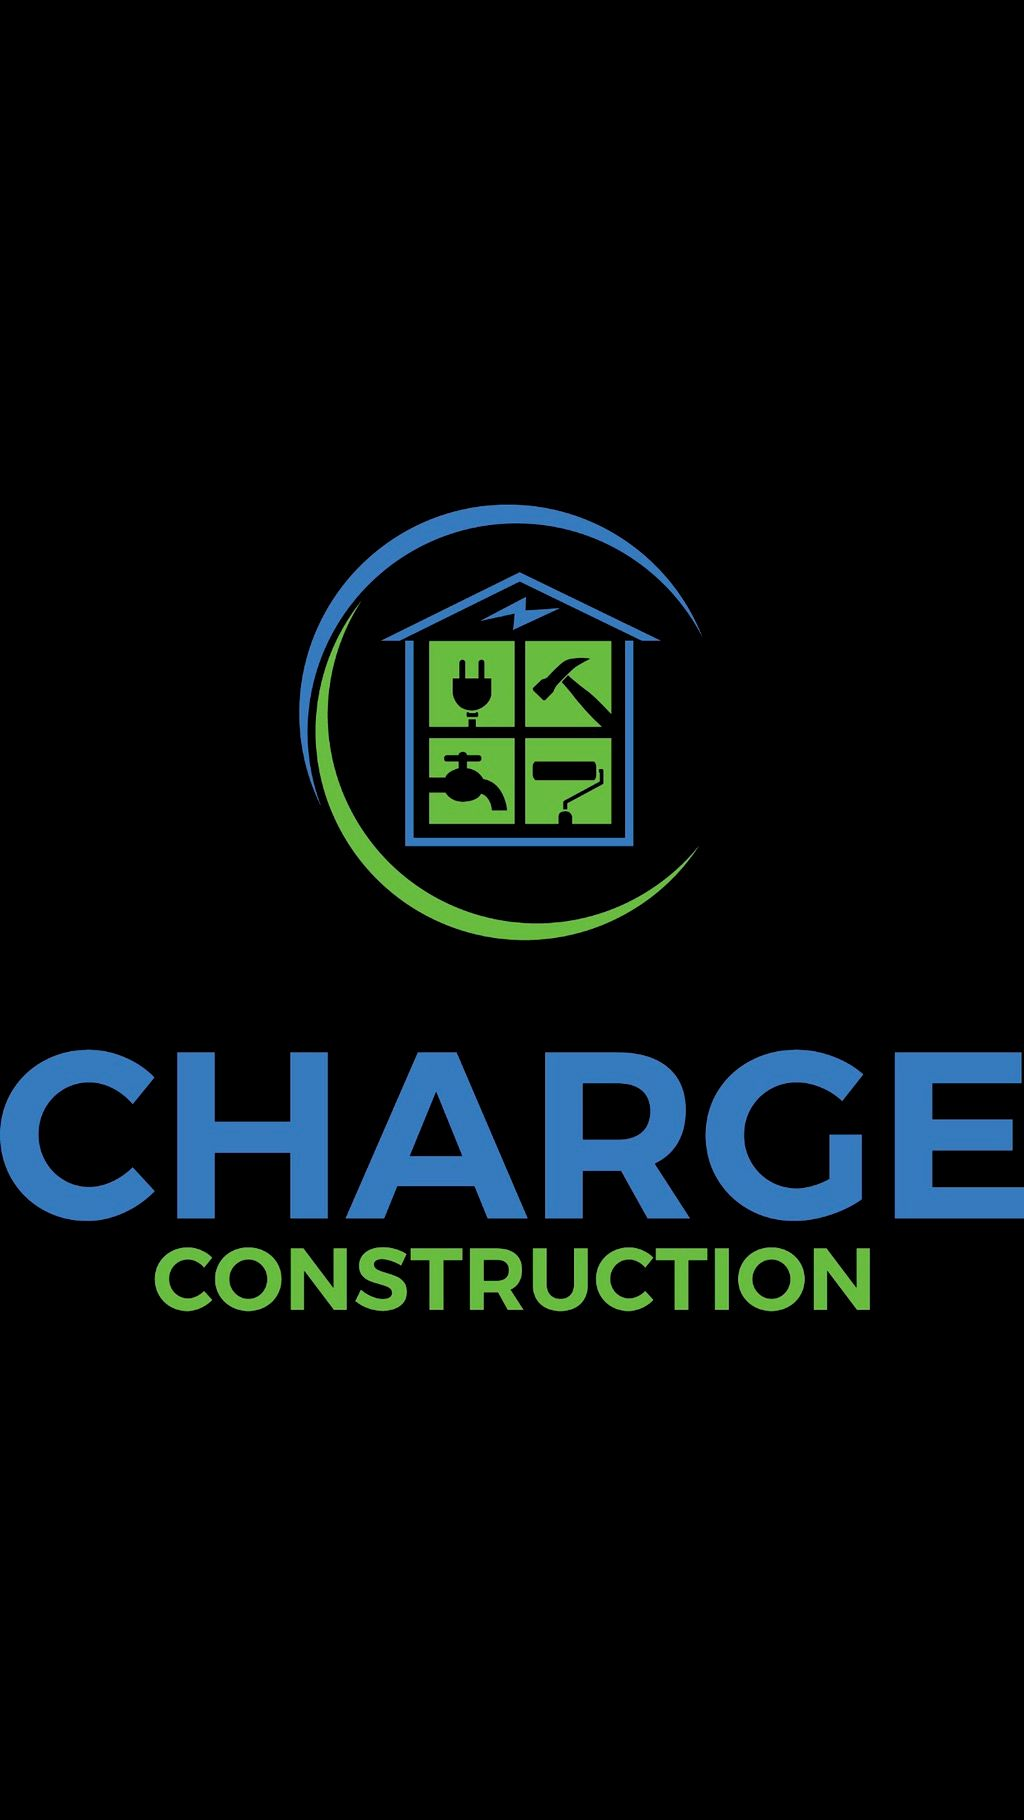 Charge Construction